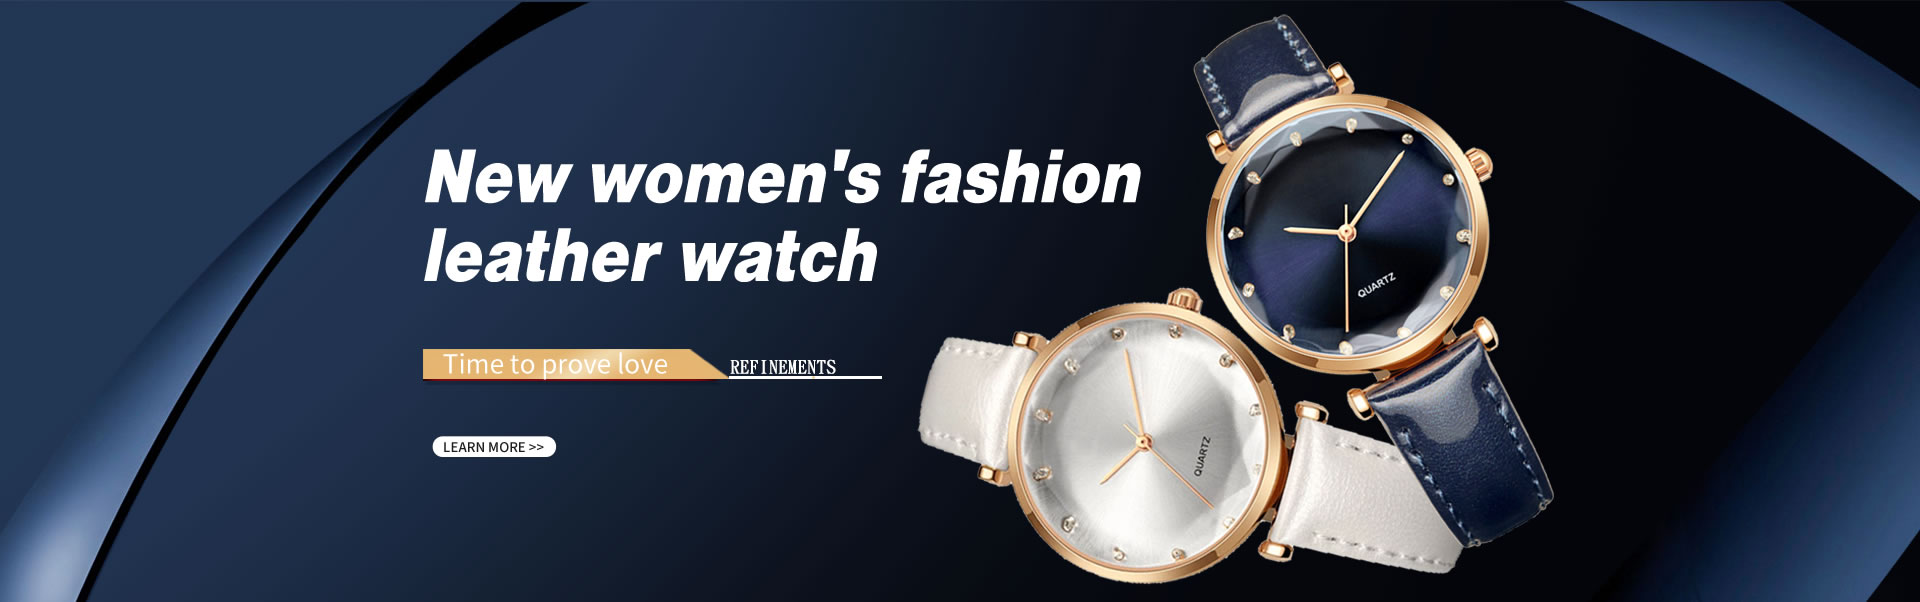 New Women's Fashion Leather Watch